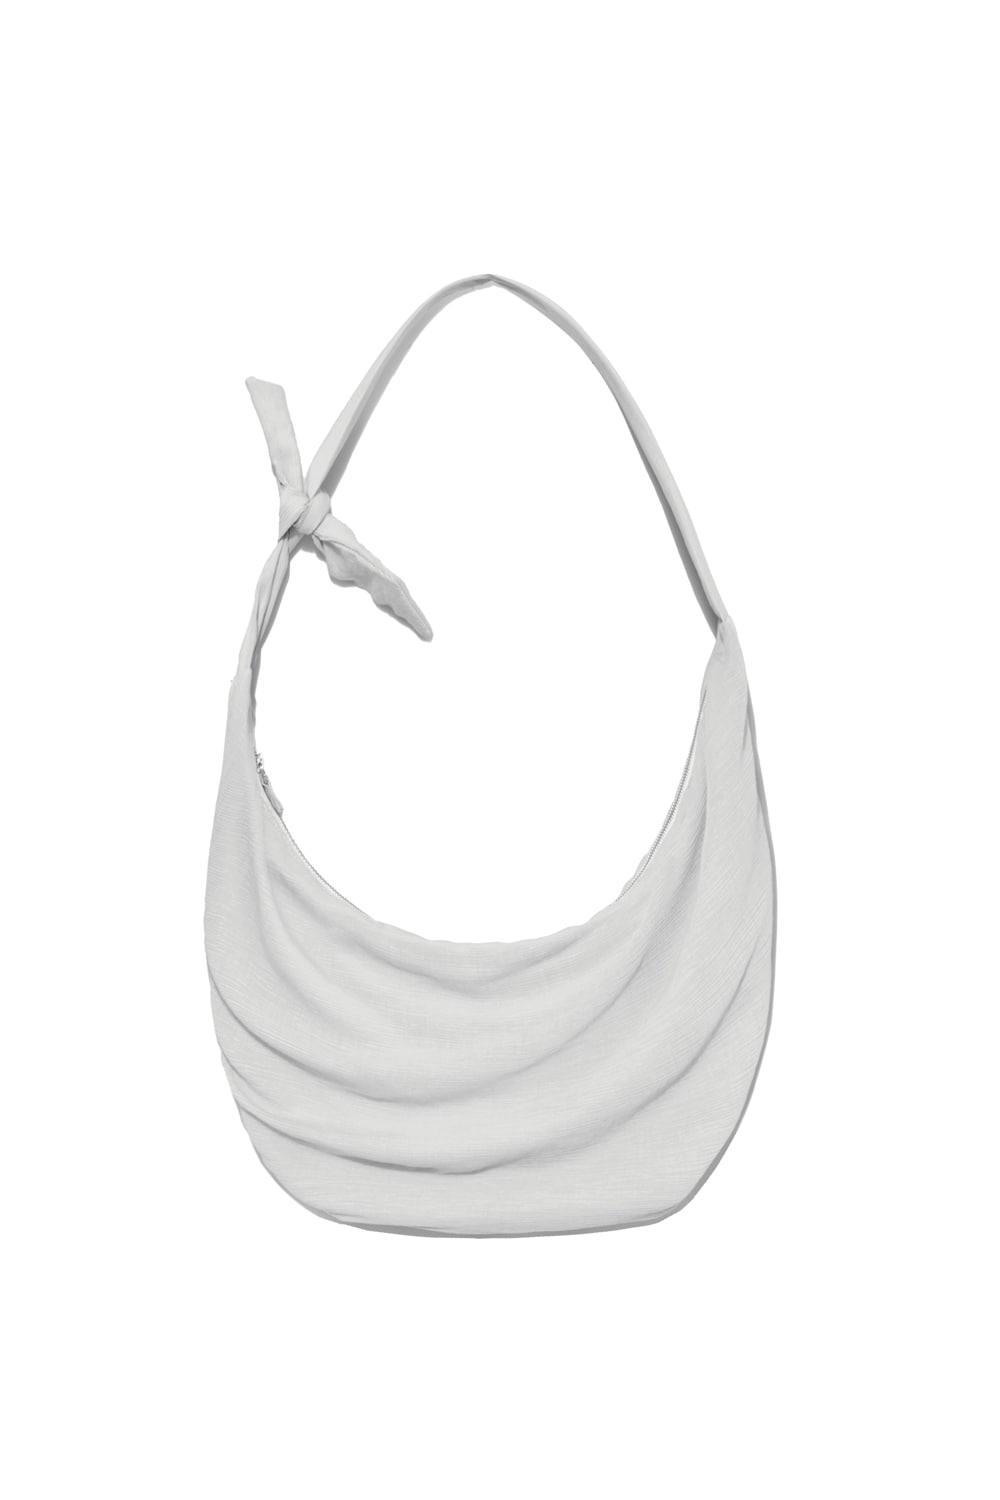 Knot Pleats Cross Bag Women [Light Grey]